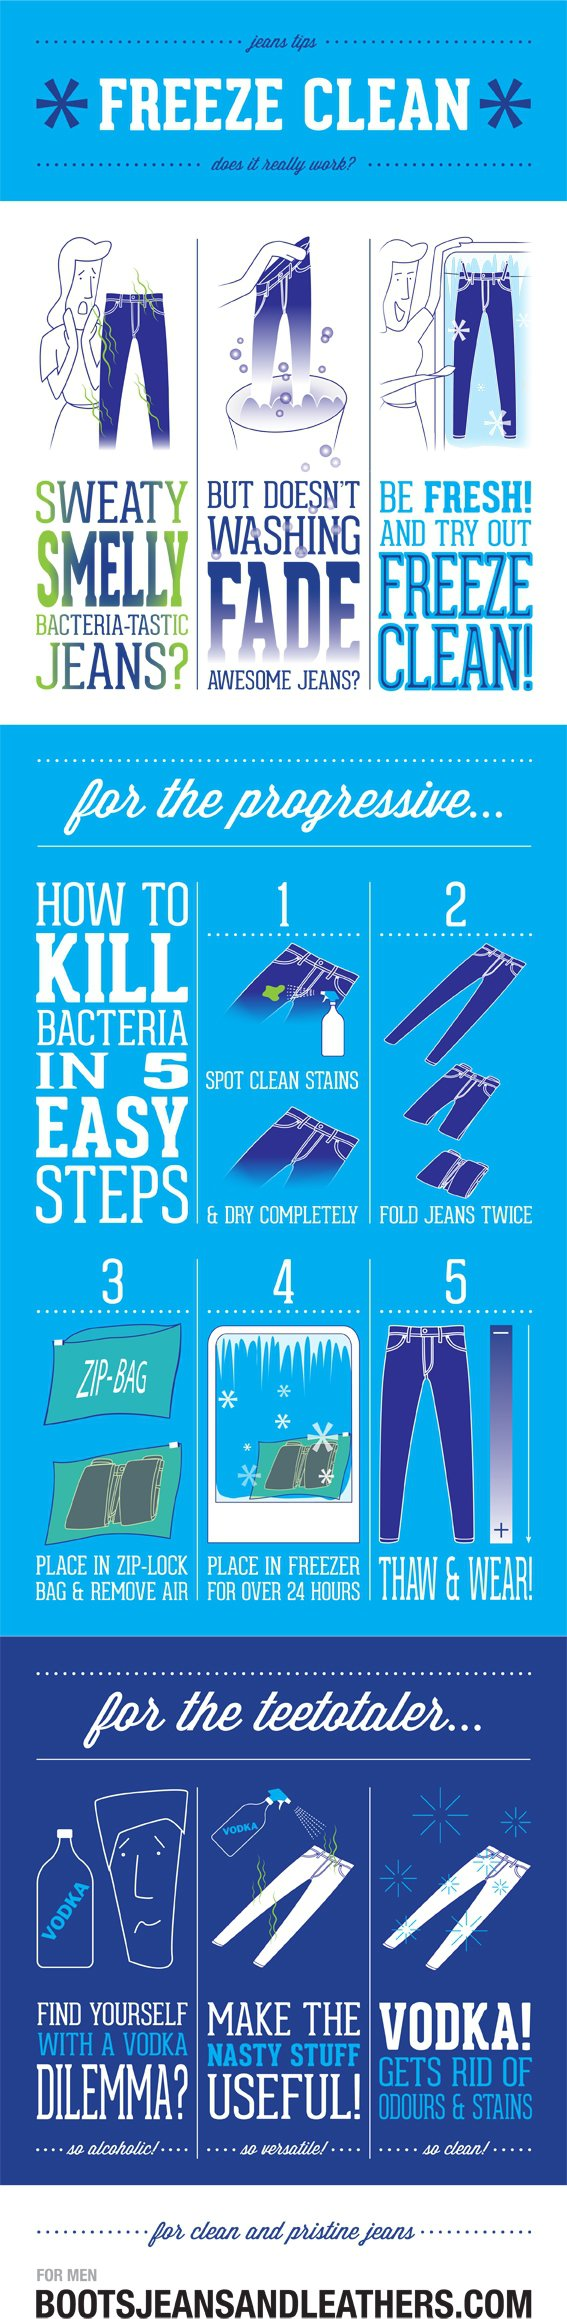 Freeze Clean Your Jeans